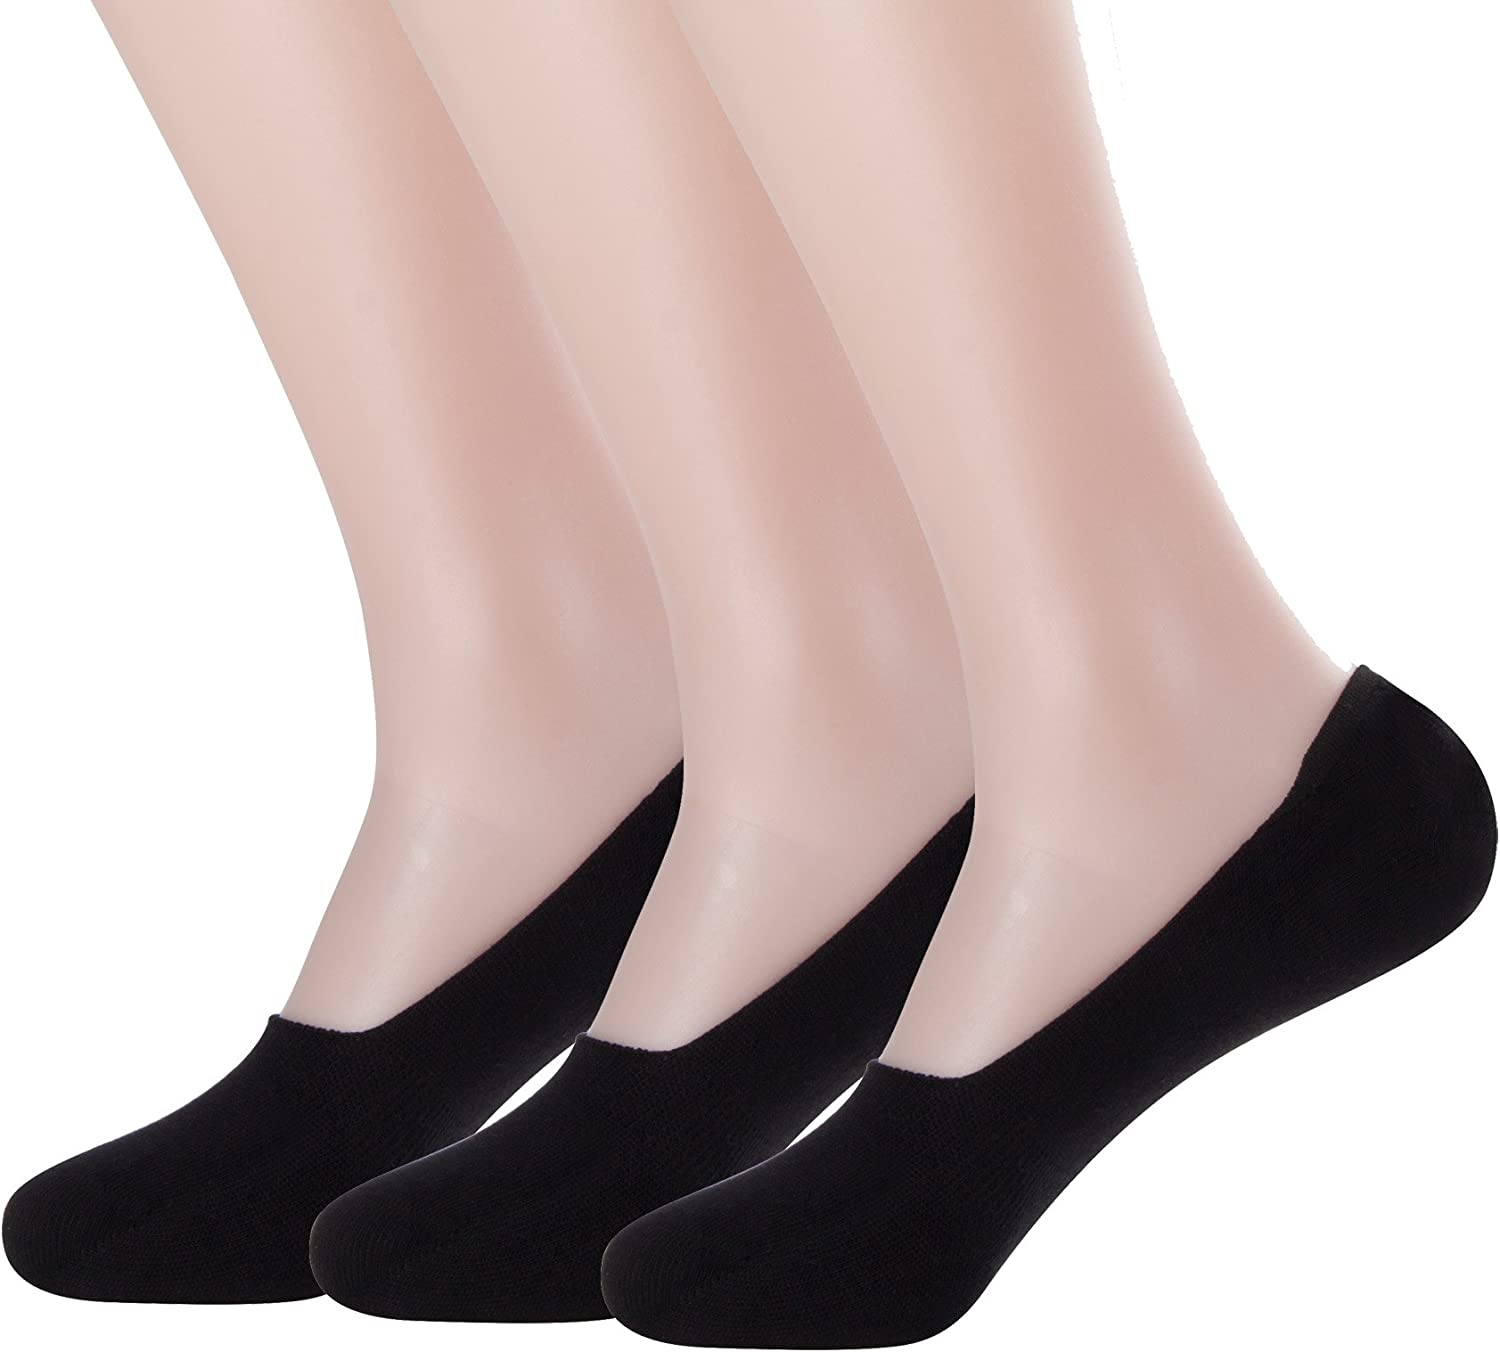 Lots 3-12 Pairs Mens Invisible No Show Cotton Loafer NonSlip Low Cut Socks 10-13